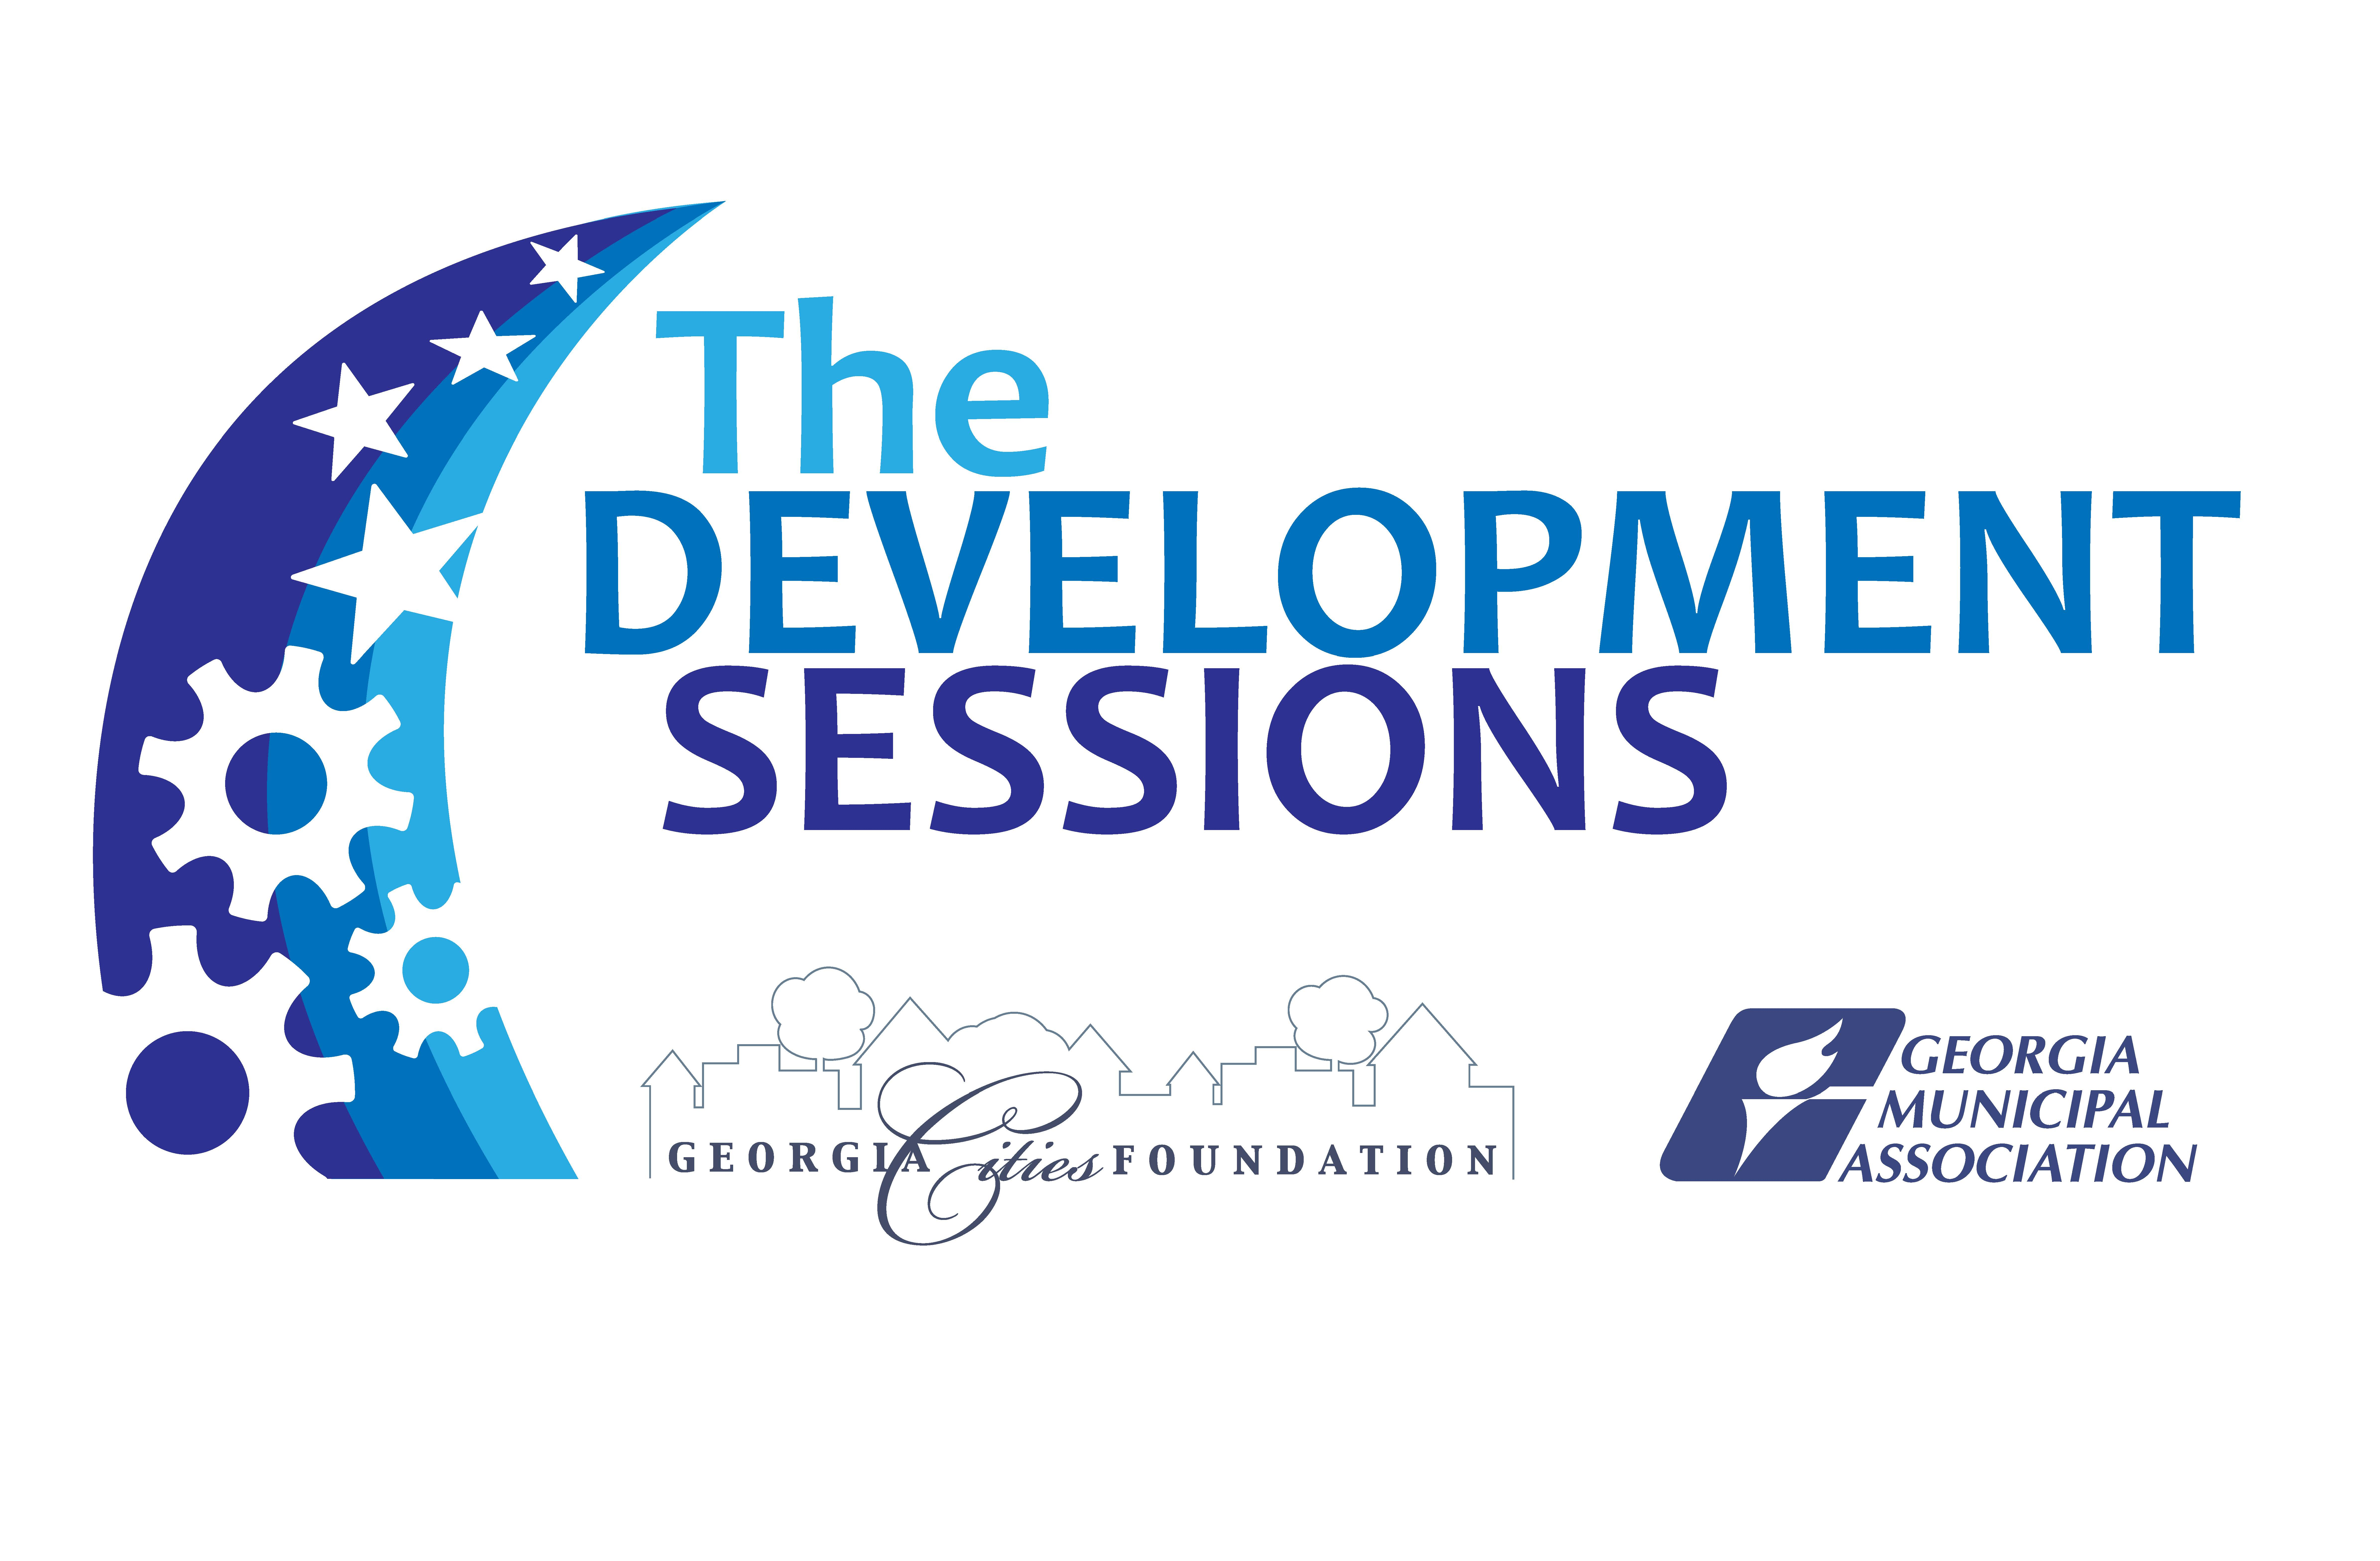 The Development Sessions